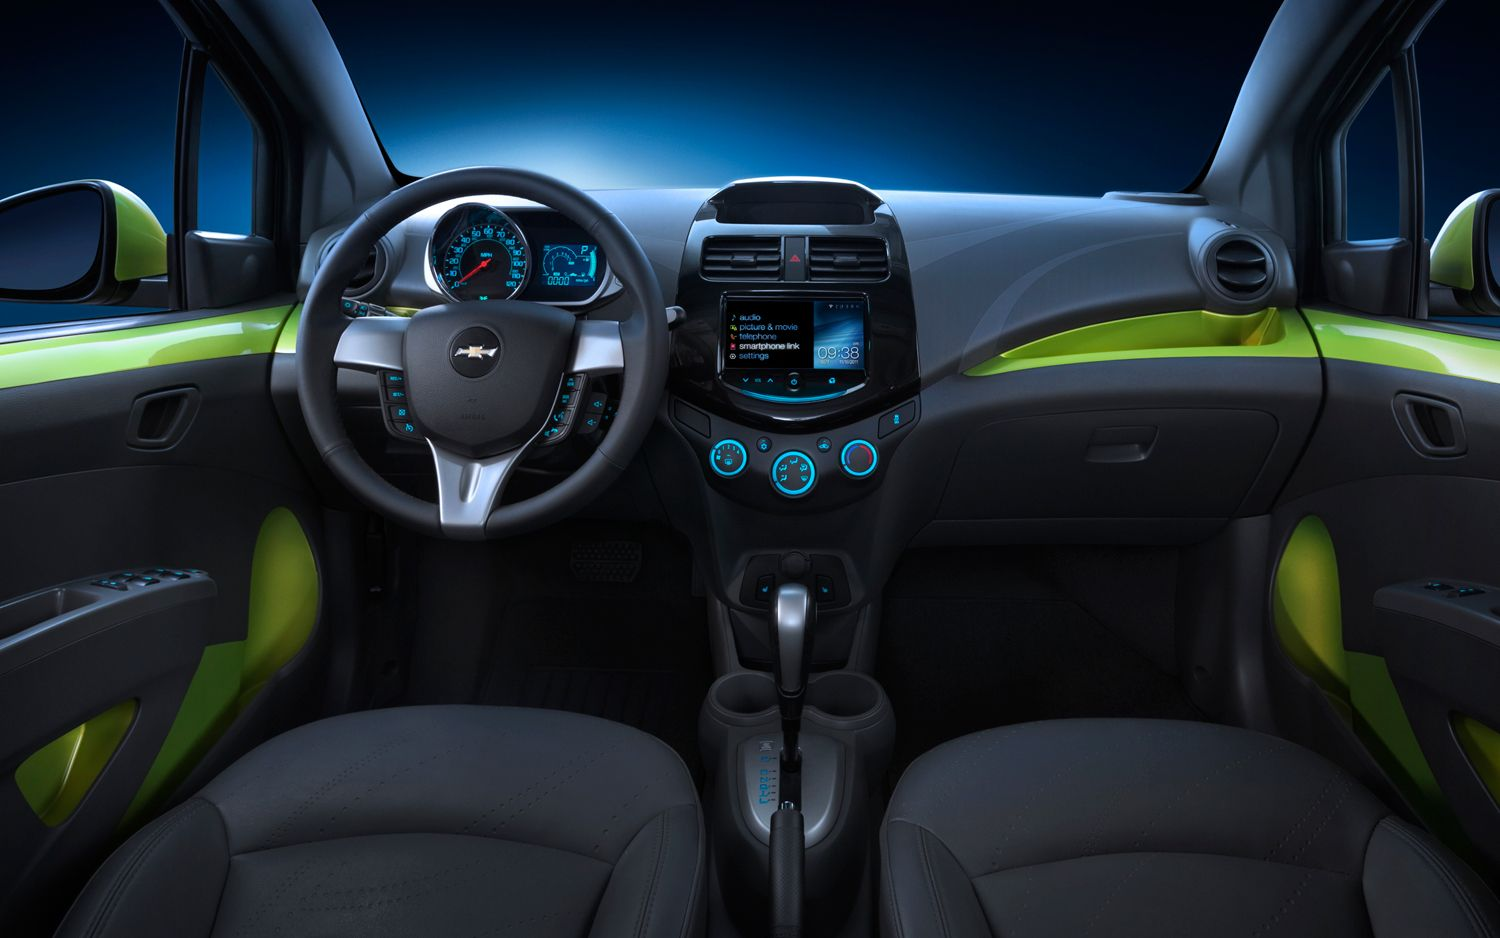 chevy spark interior - Google Search | Cars and Accessories | Pinterest